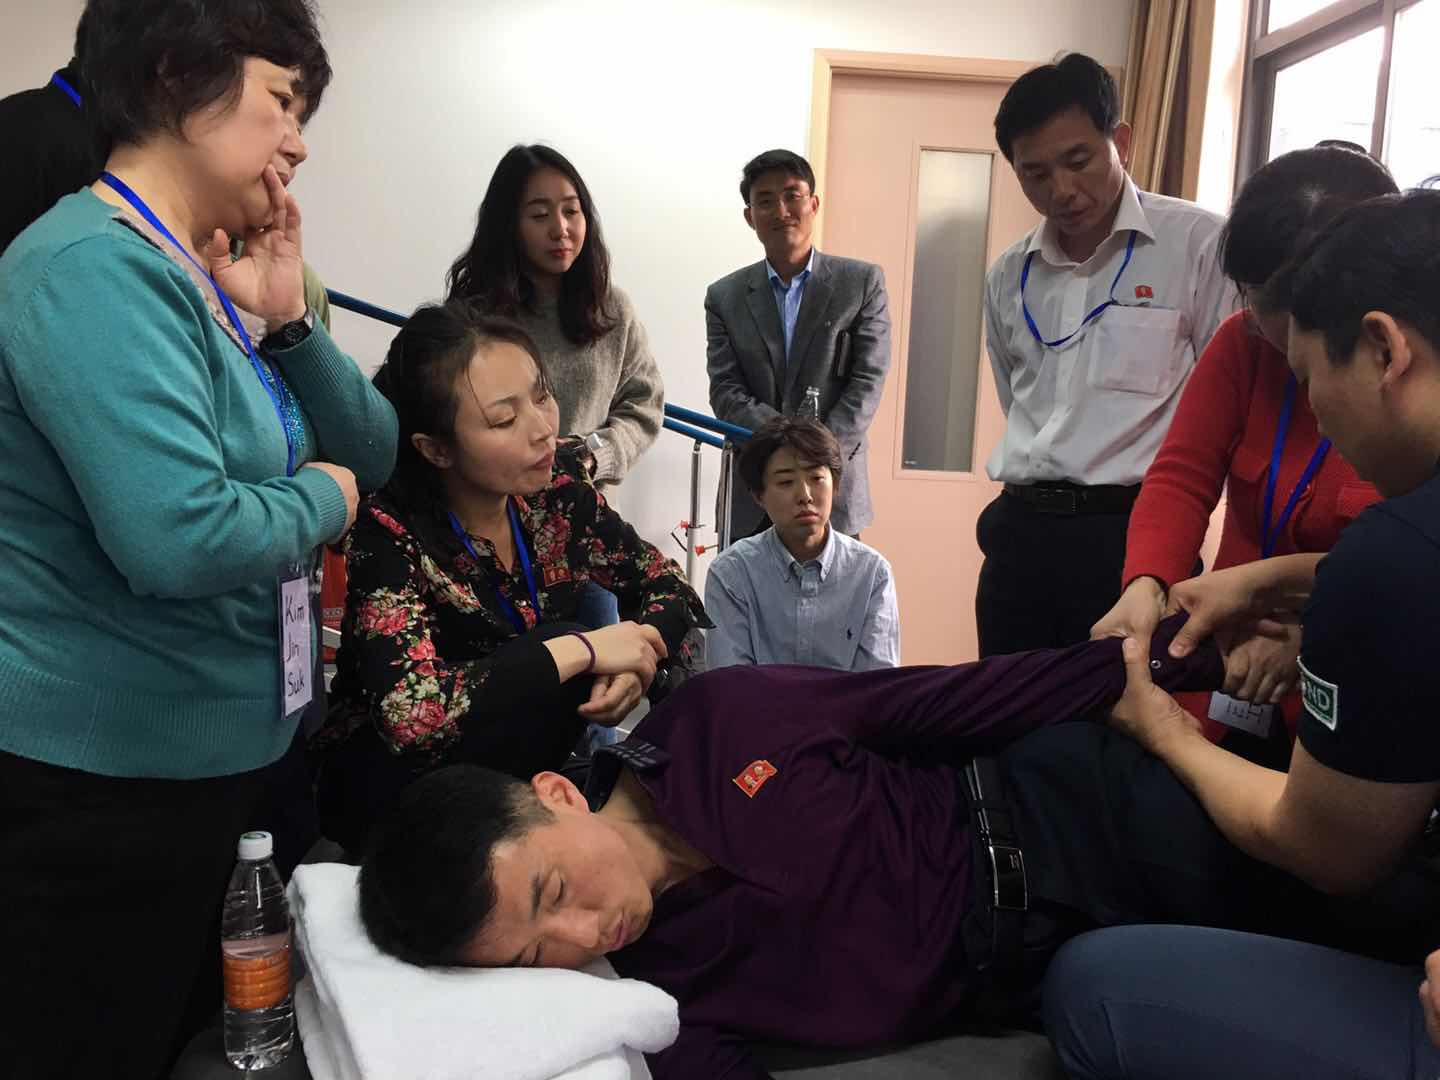 North Korean doctors practicing Bobath Therapy Techniques in Shanghai, China